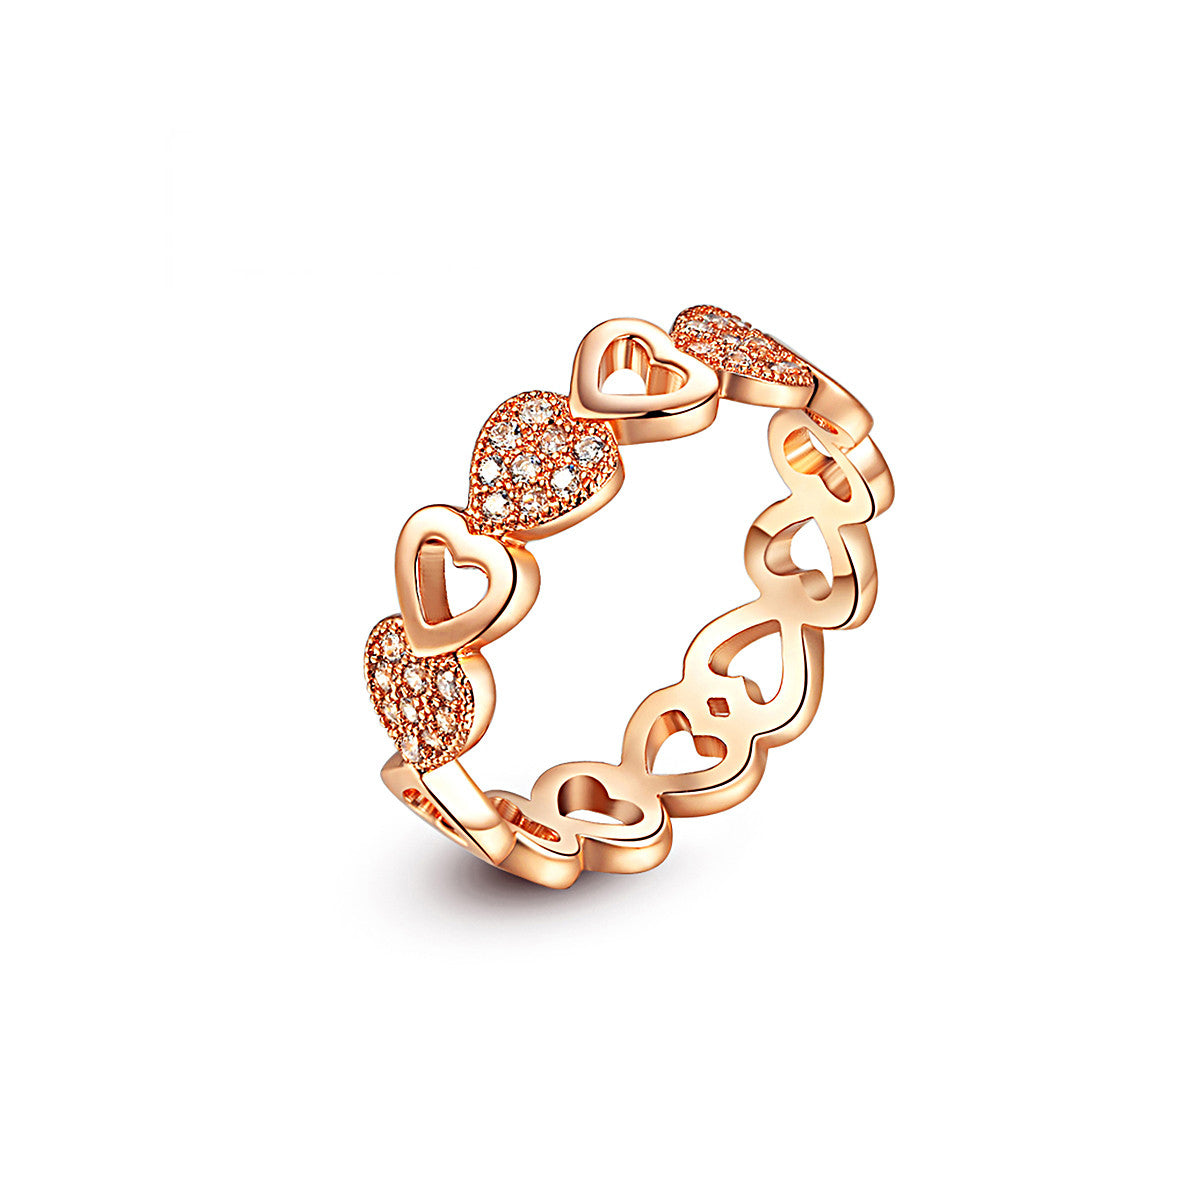 Rose Gold Hollow Heart Shaped Ring